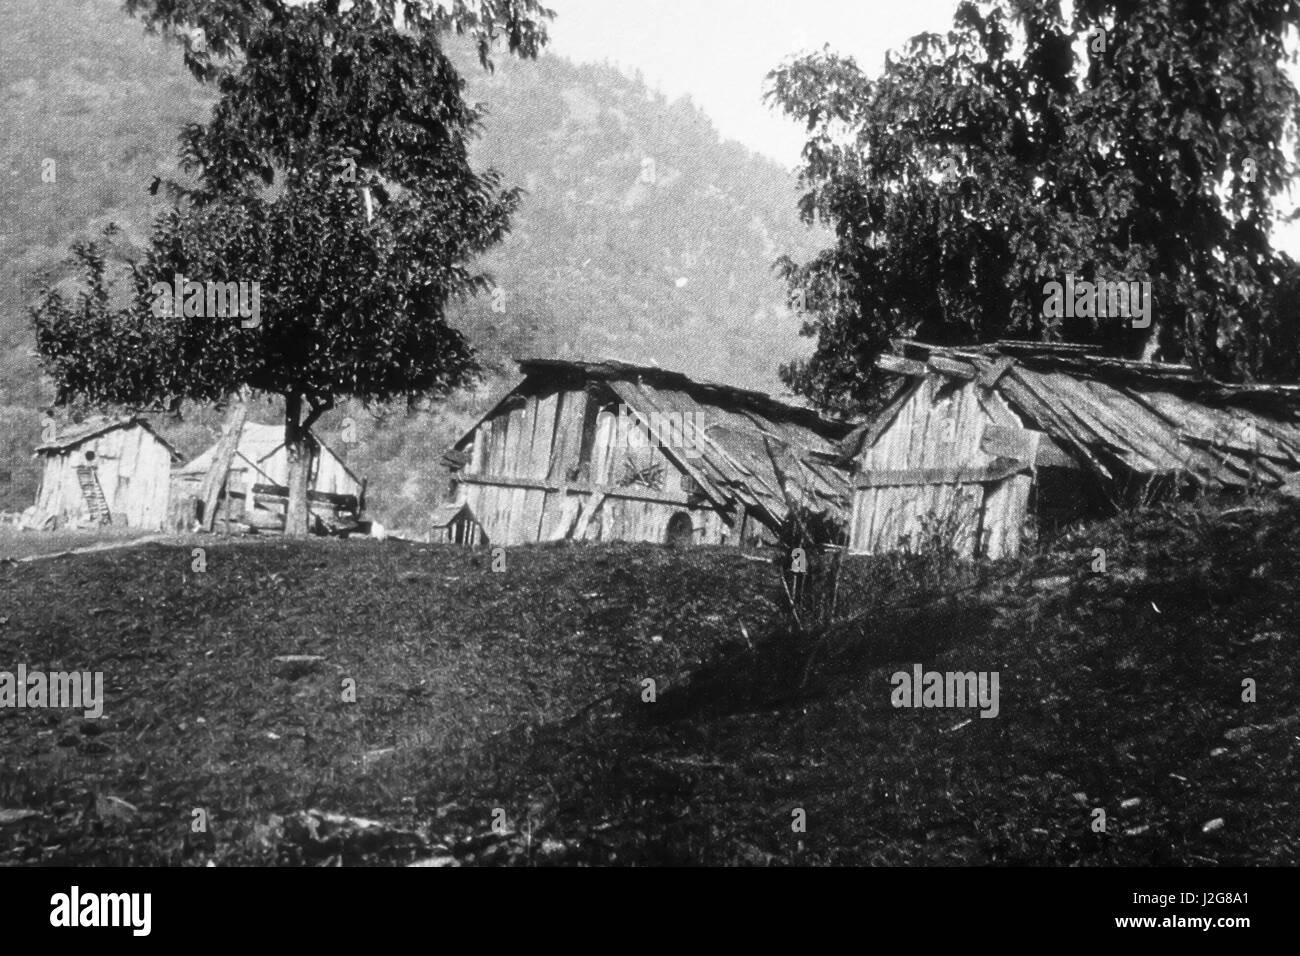 1898 Historic black and white photograph of a Hupa Indian village on the trinity River. The buildings are built - Stock Image